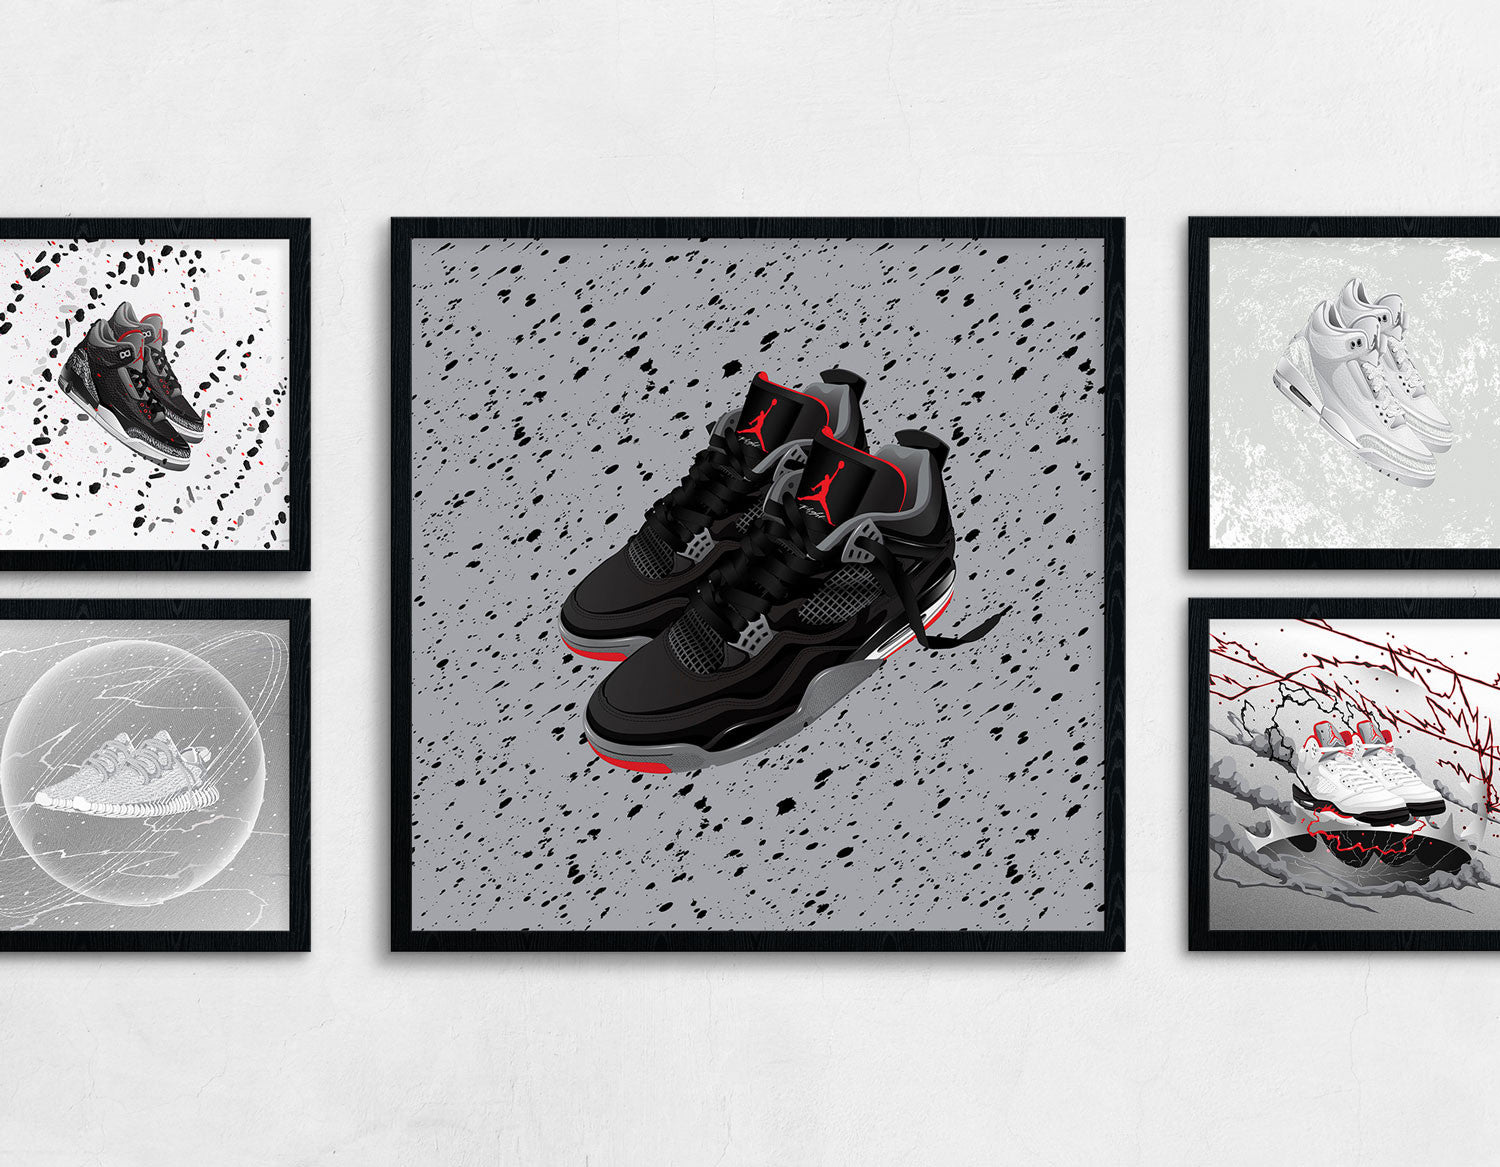 Framed contemporary sneaker art of the Air Jordan 4 Bred